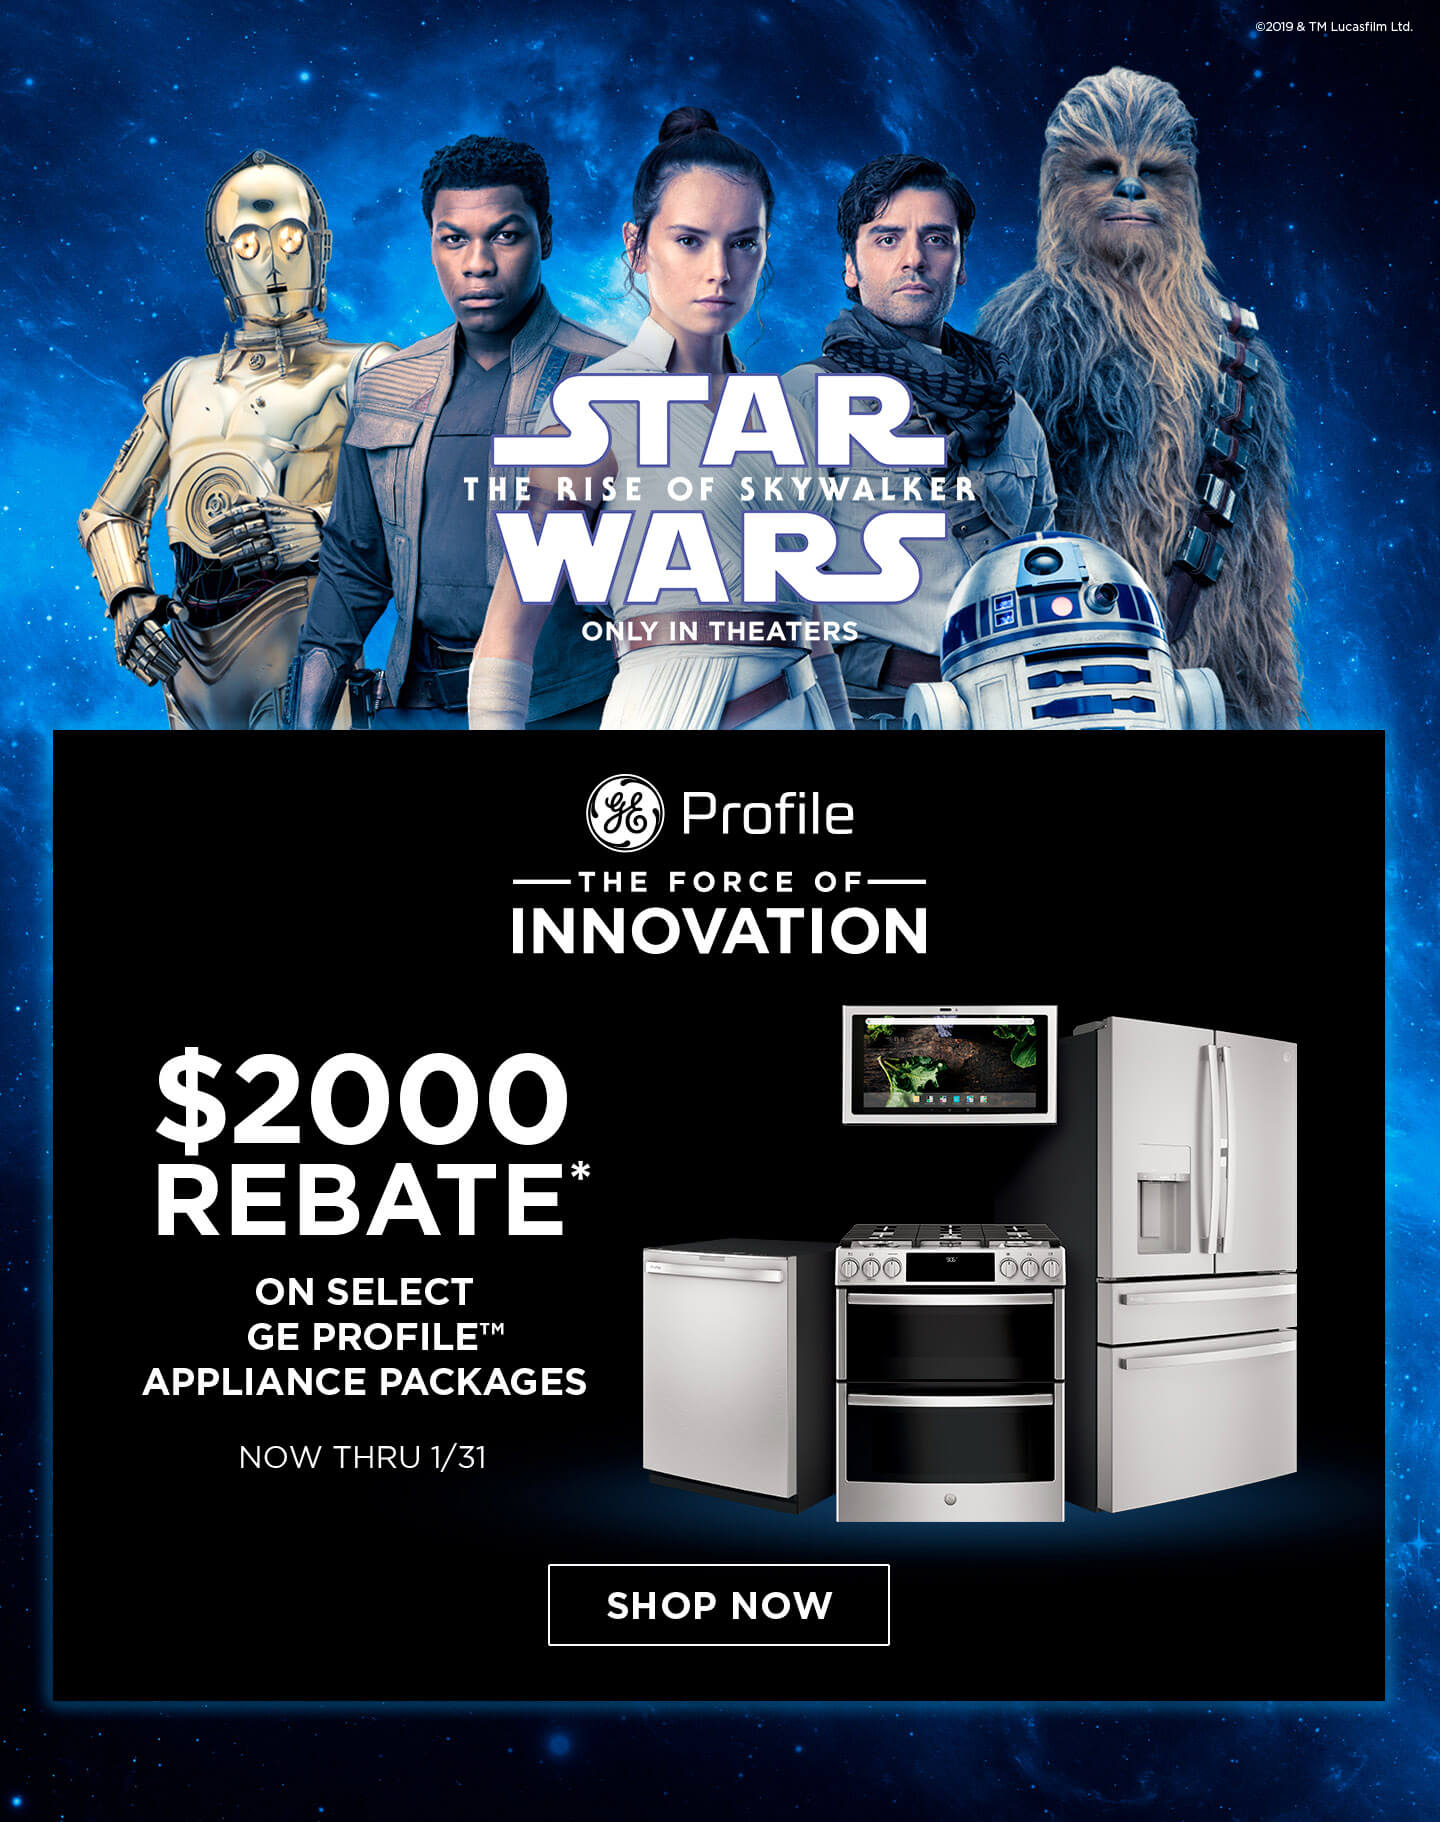 GE Profile the Force of Innovation $2000 Rebate Offer.